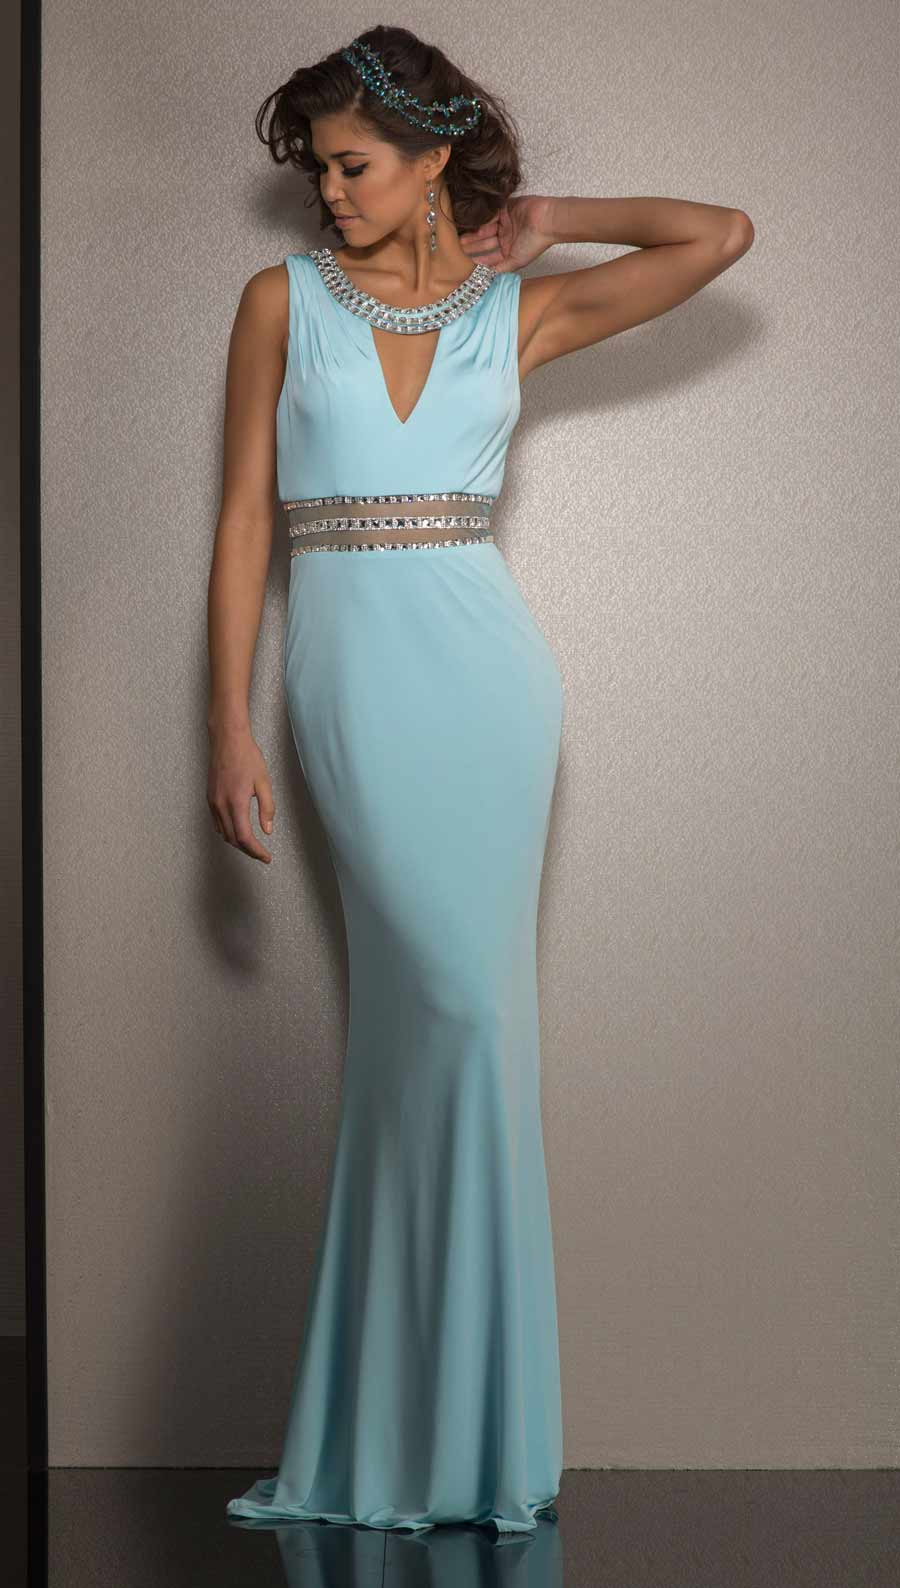 Clarisse Long Formal Prom Dress 2601 | Promgirl.net